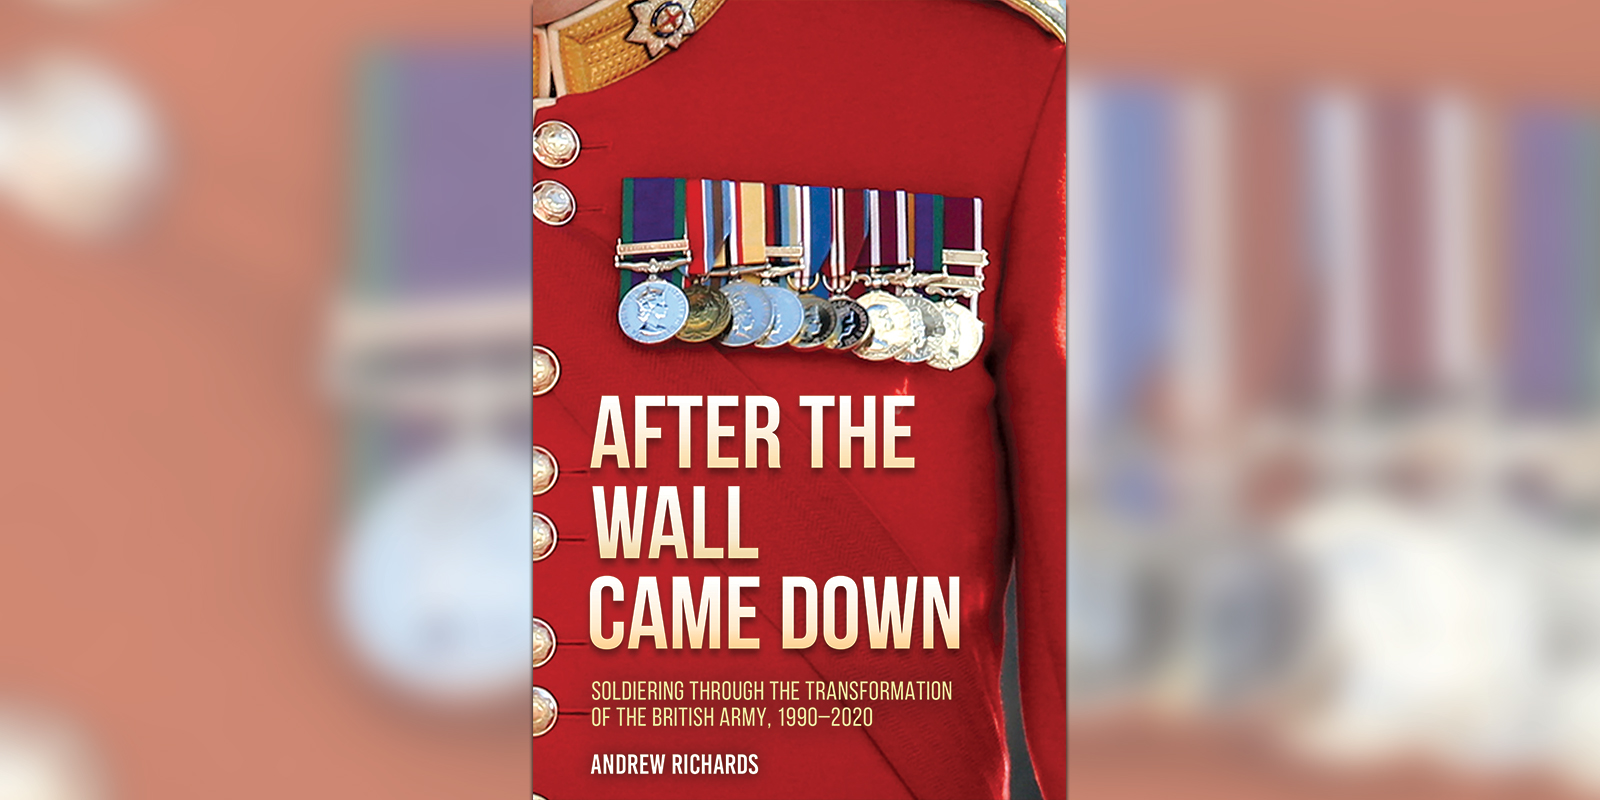 'After the Wall Came Down' book cover